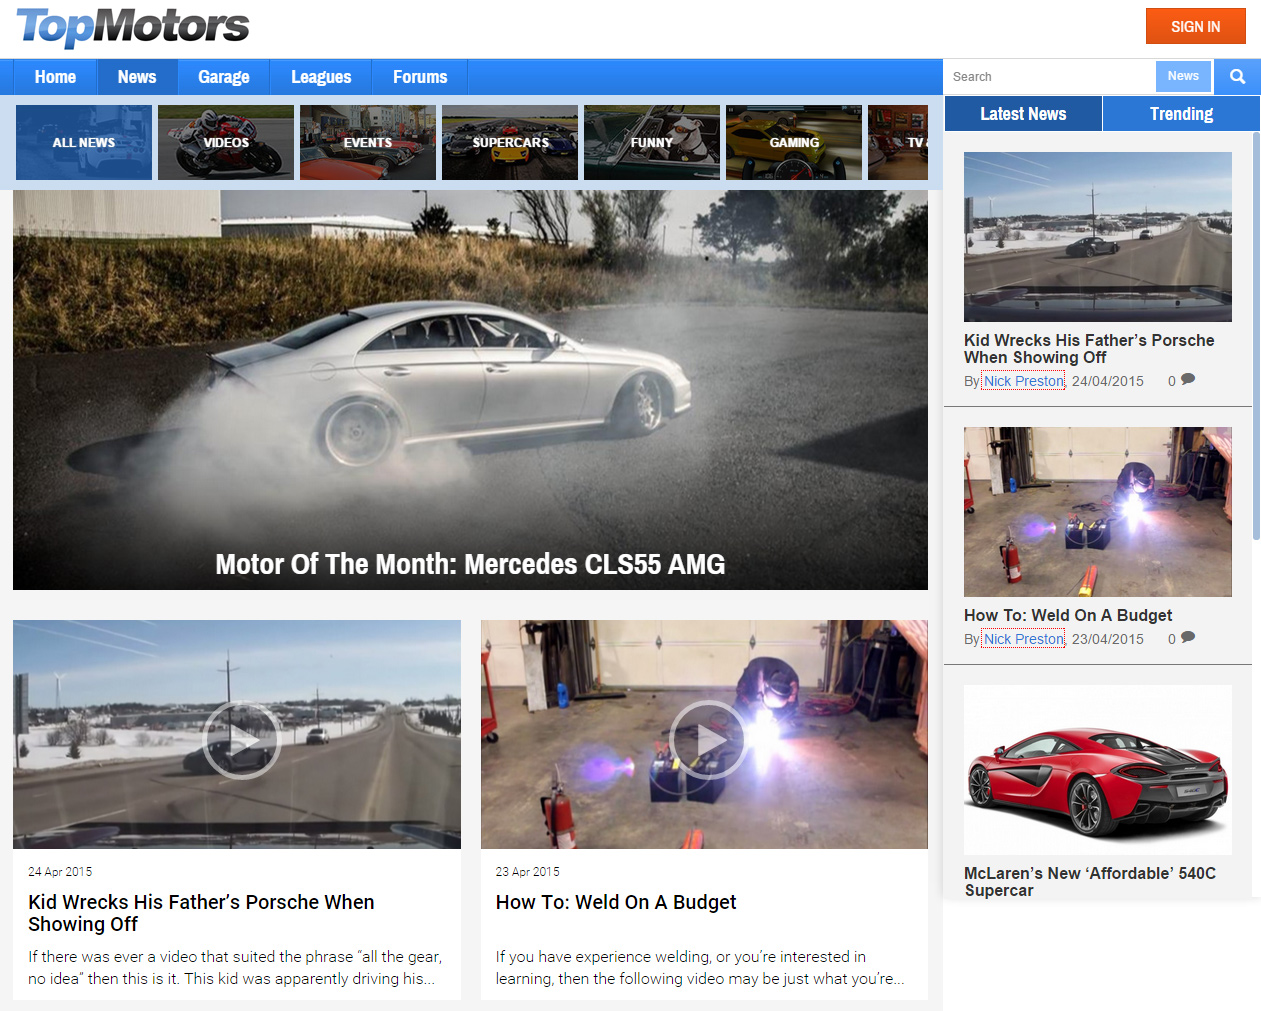 Top Motors News